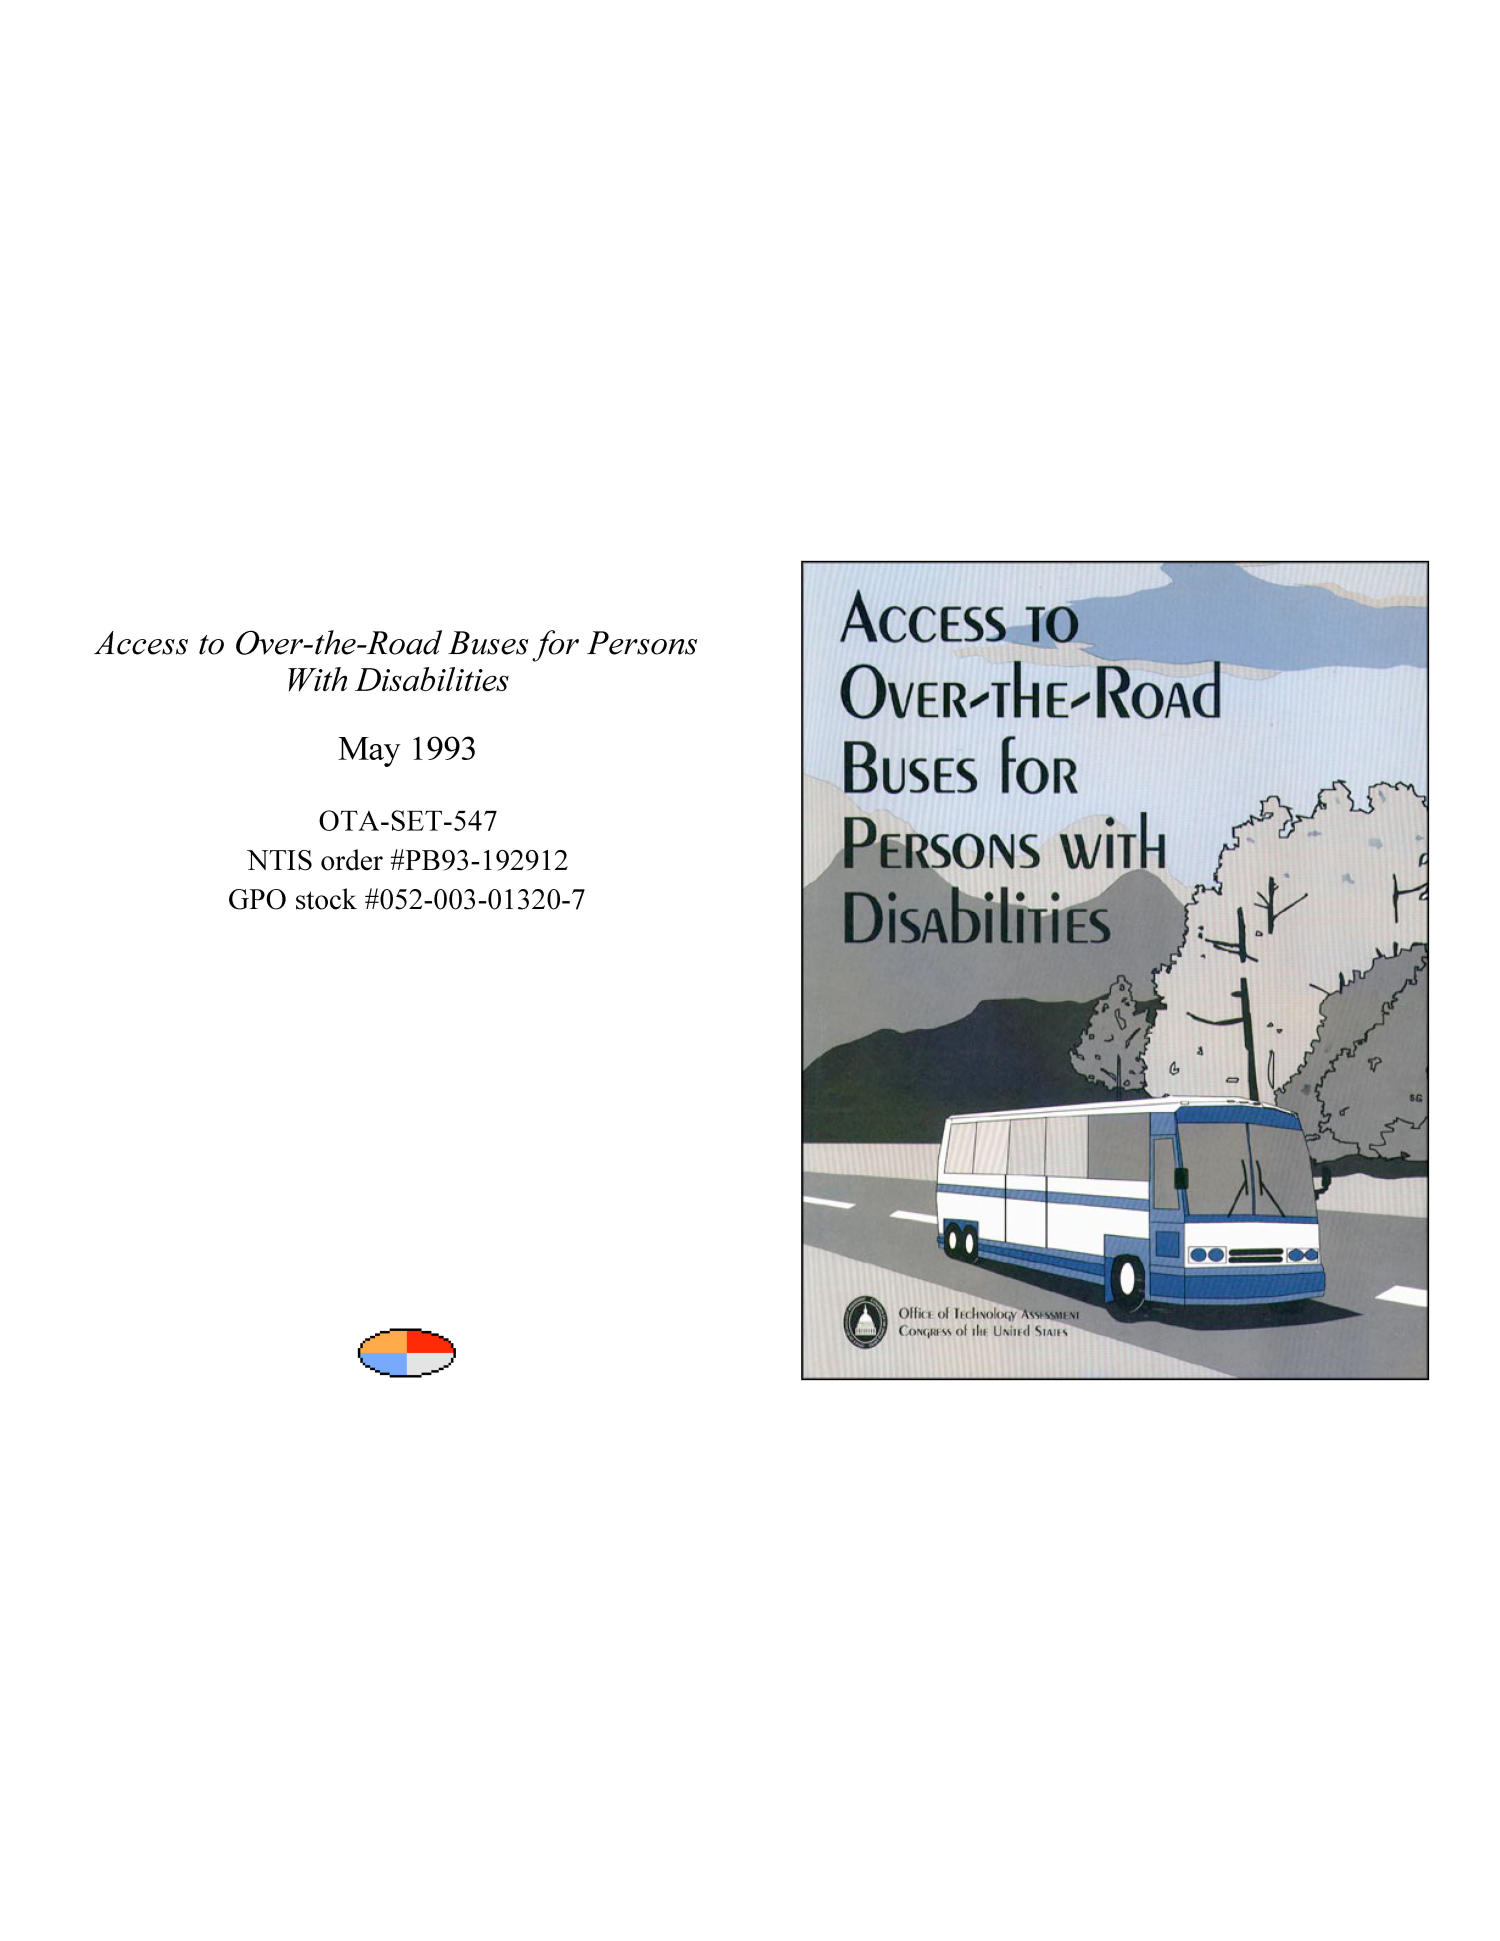 Access to Over-the-Road Buses for Persons With Disabilities                                                                                                      Front Cover